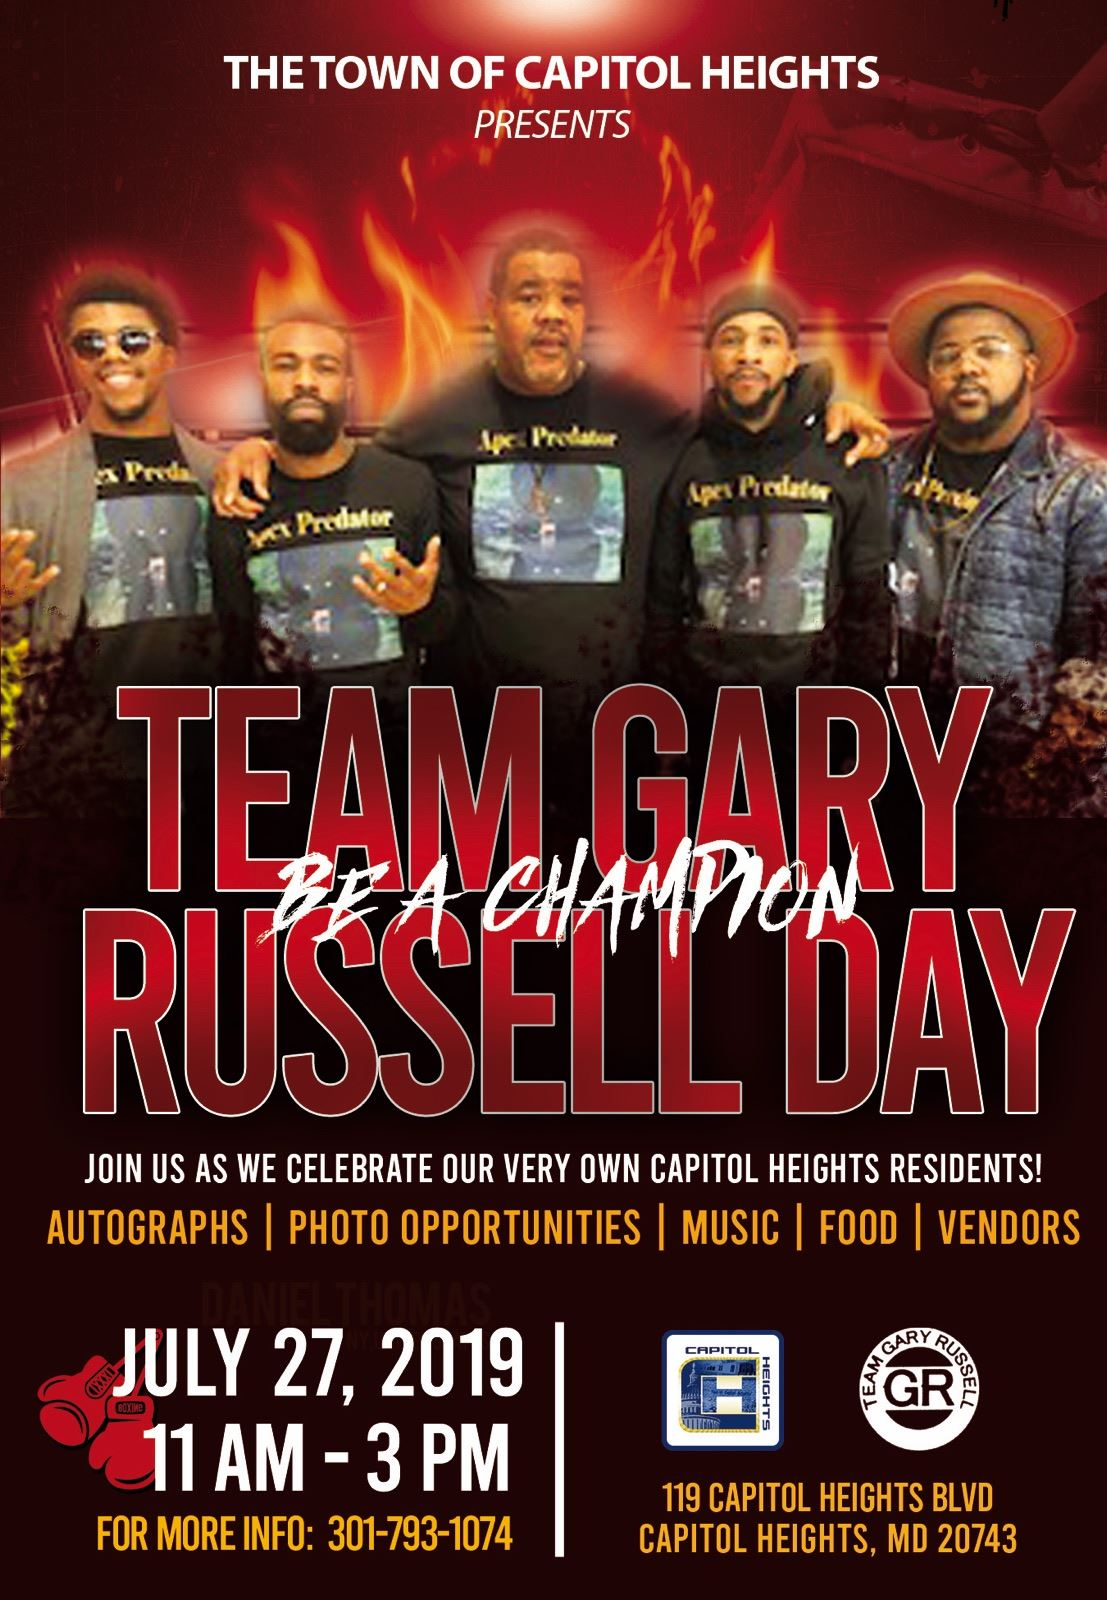 Team Gary Russell Day Flyer